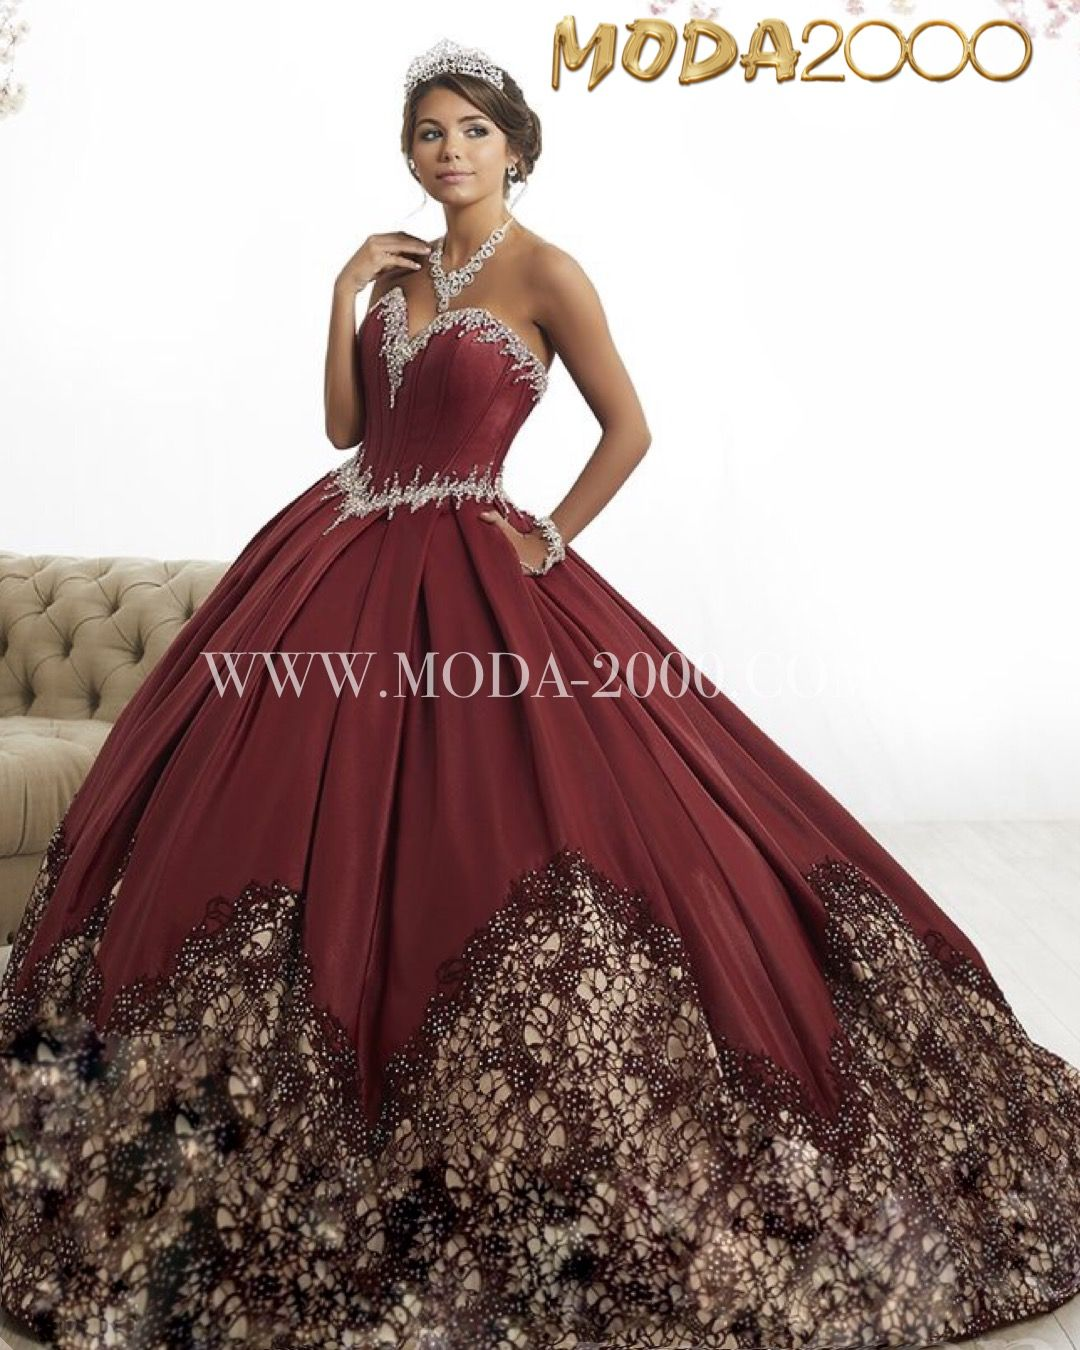 7e206ce117b Elegant embroidered burgundy quinceanera dress